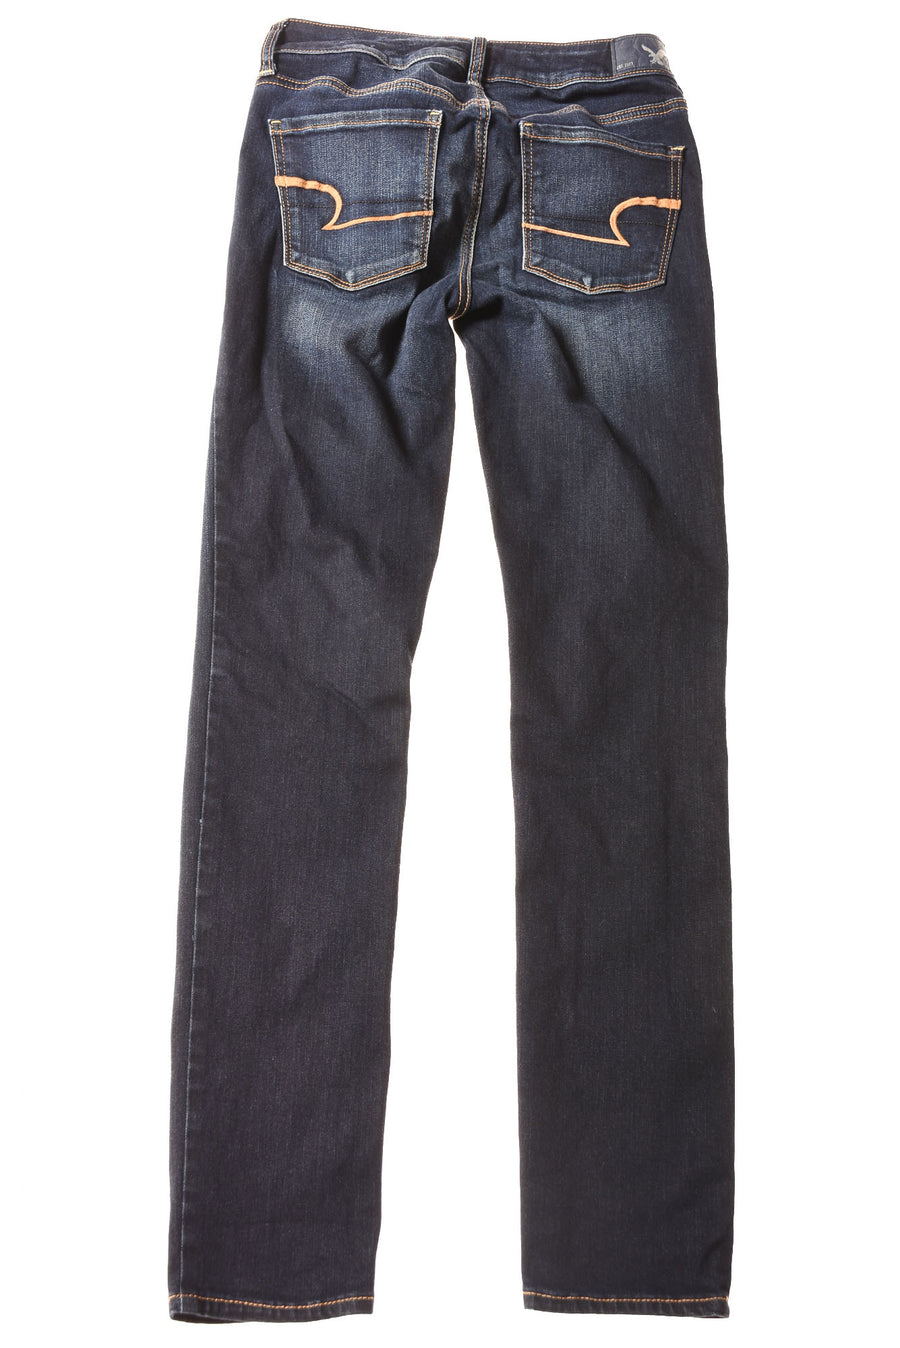 USED American Eagle Women's Jeans 4 Blue